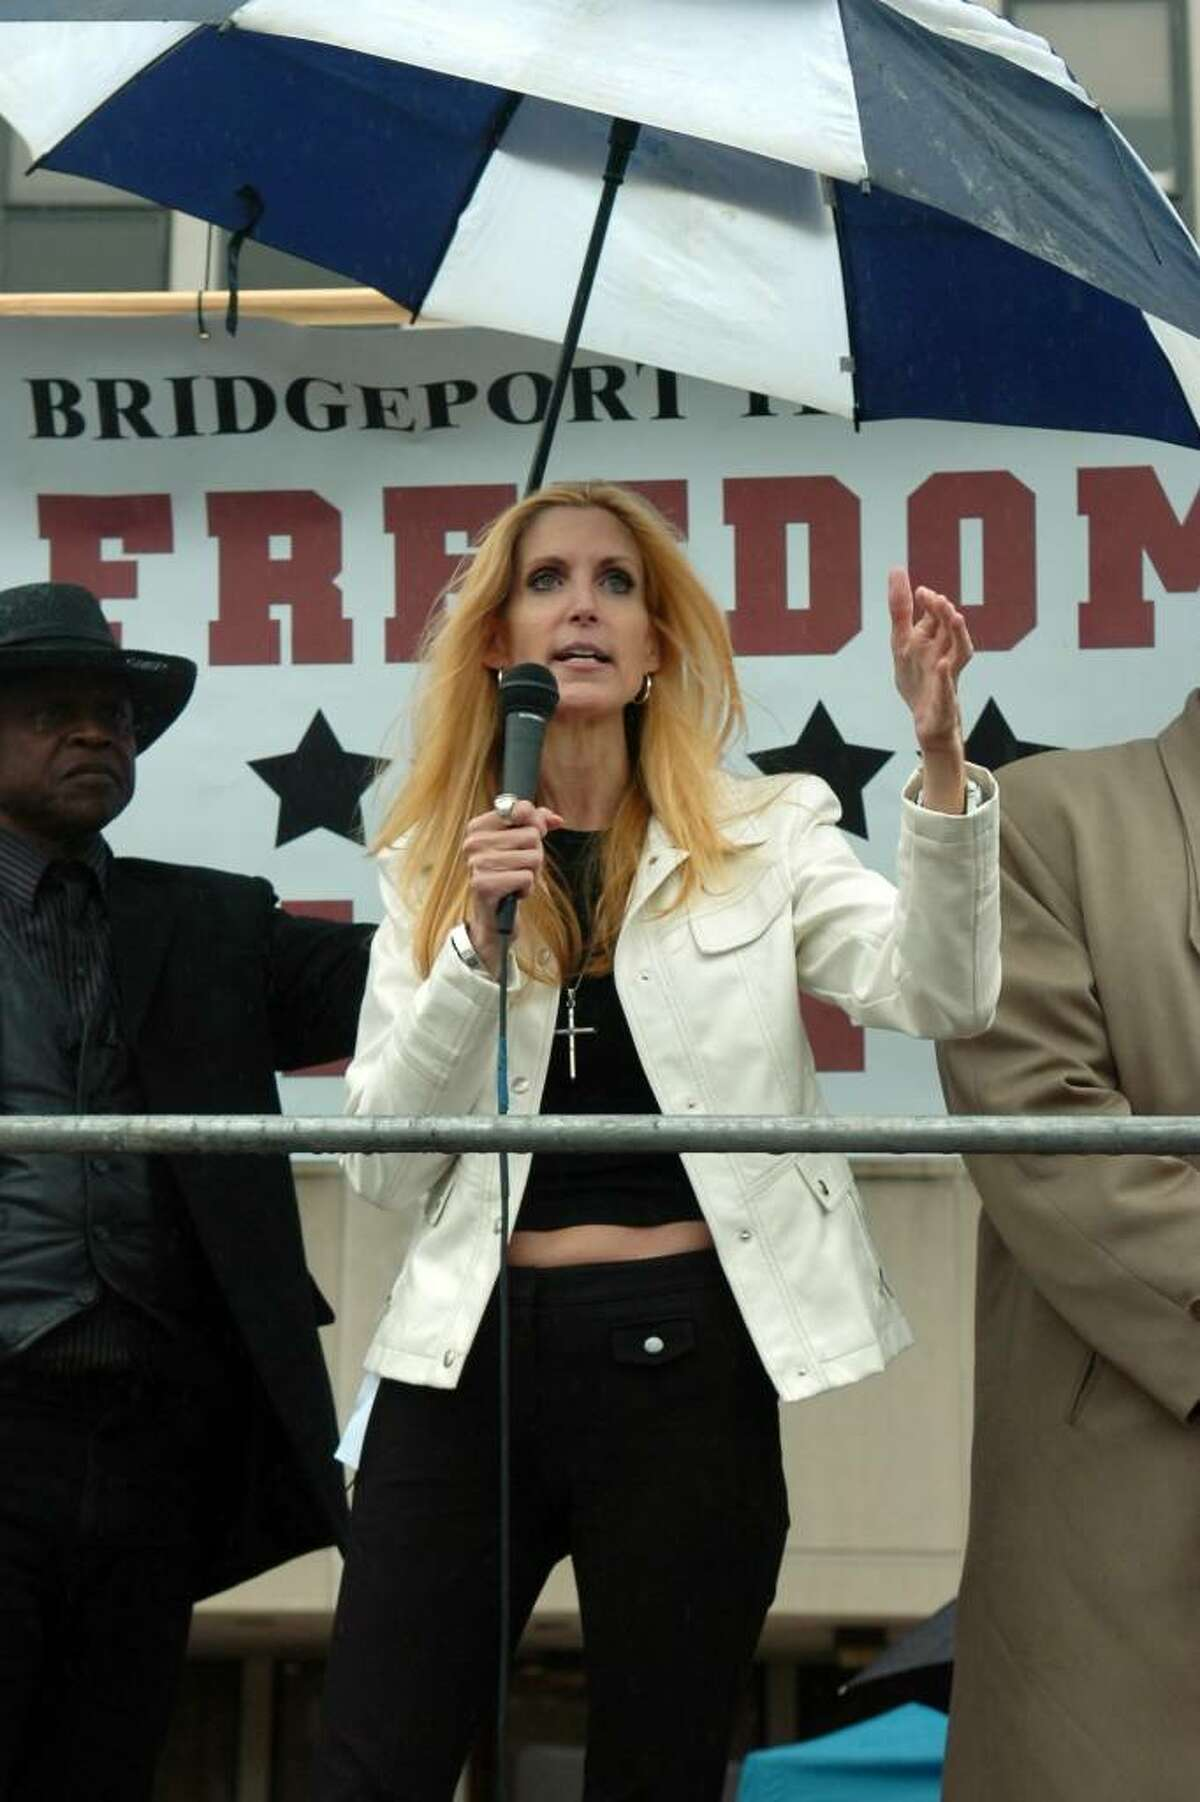 Conservative political commentator Ann Coulter speaks during the Tea Party Express rally on Baldwin Plaza, in Bridgeport, Conn. on Friday Sept. 11th, 2009.